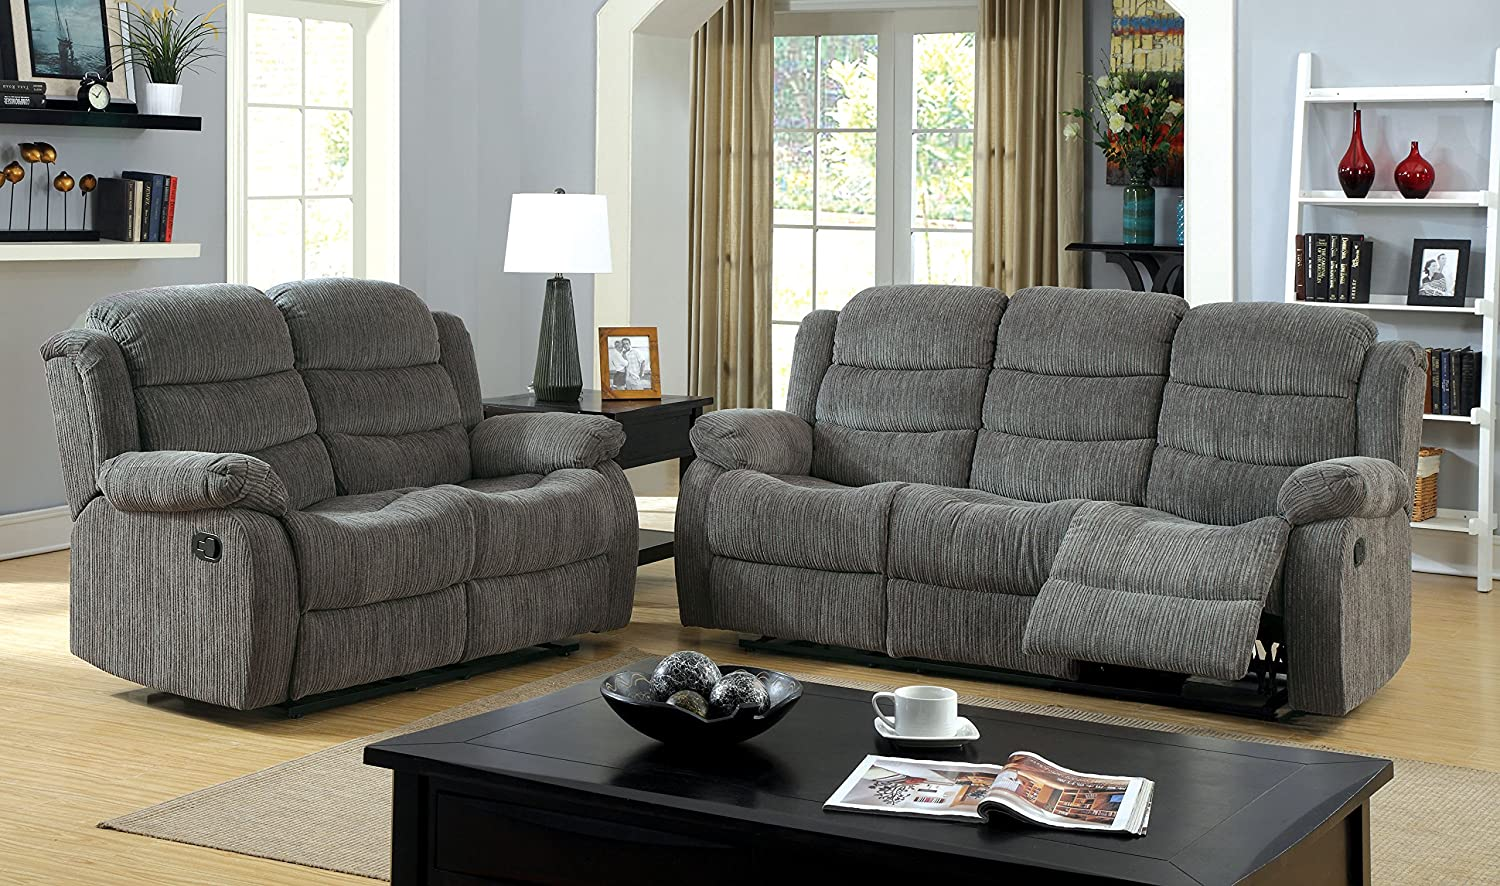 Amazon.com: Furniture Of America Blake Chenille 2 Recliner Sofa, Gray:  Kitchen U0026 Dining